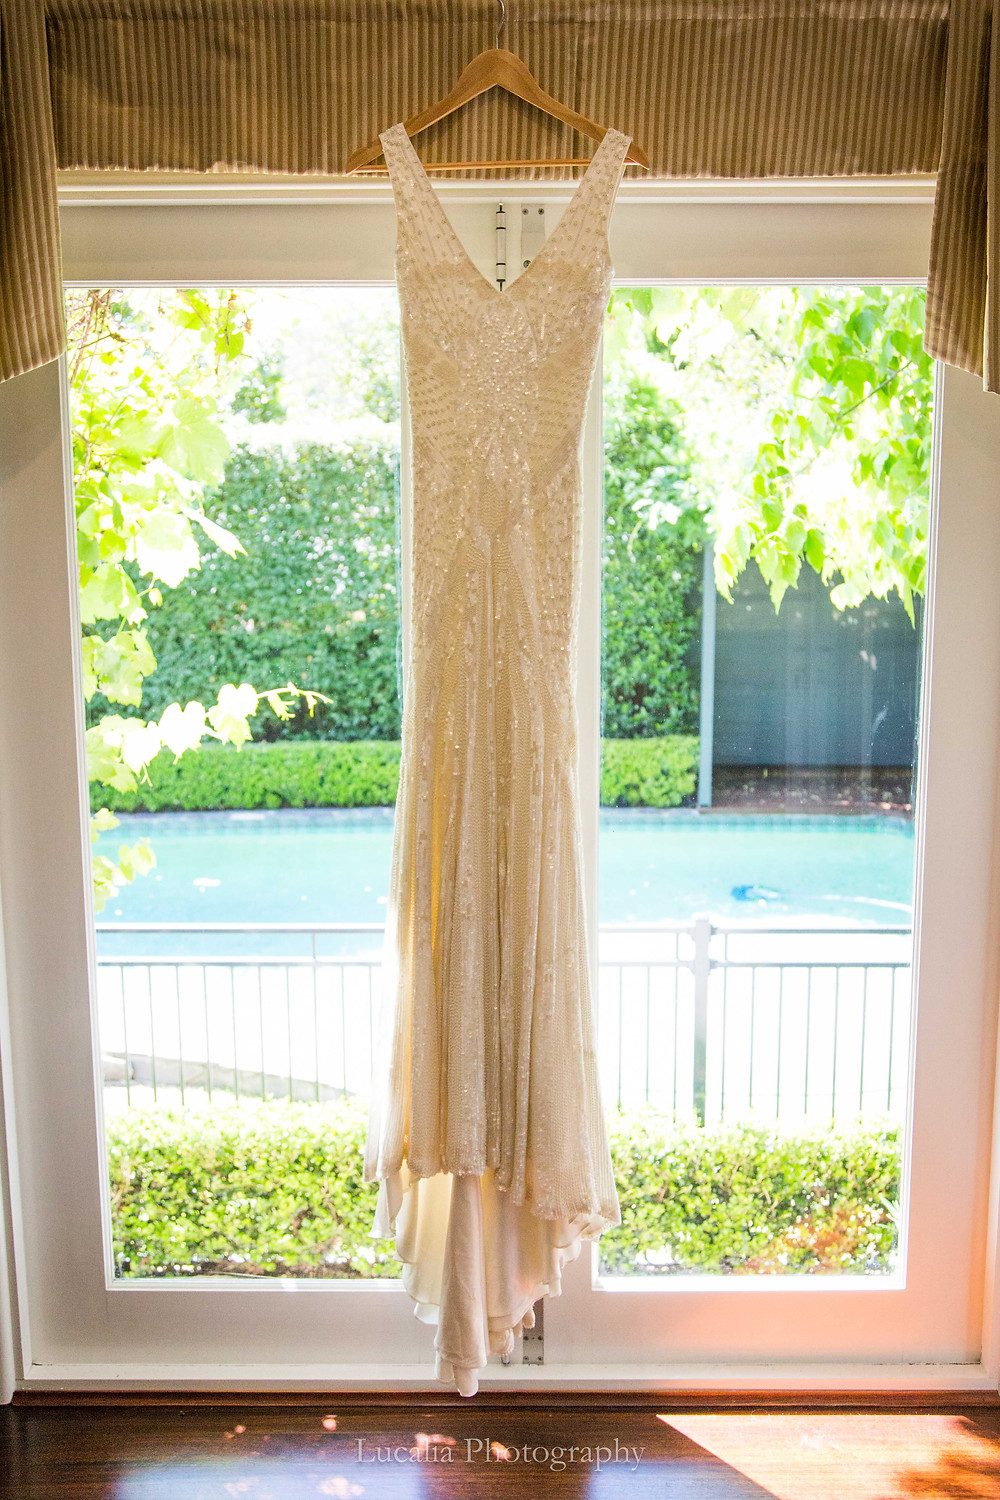 Karen Willis Holmes wedding dress hanging in a window with leaves in the background